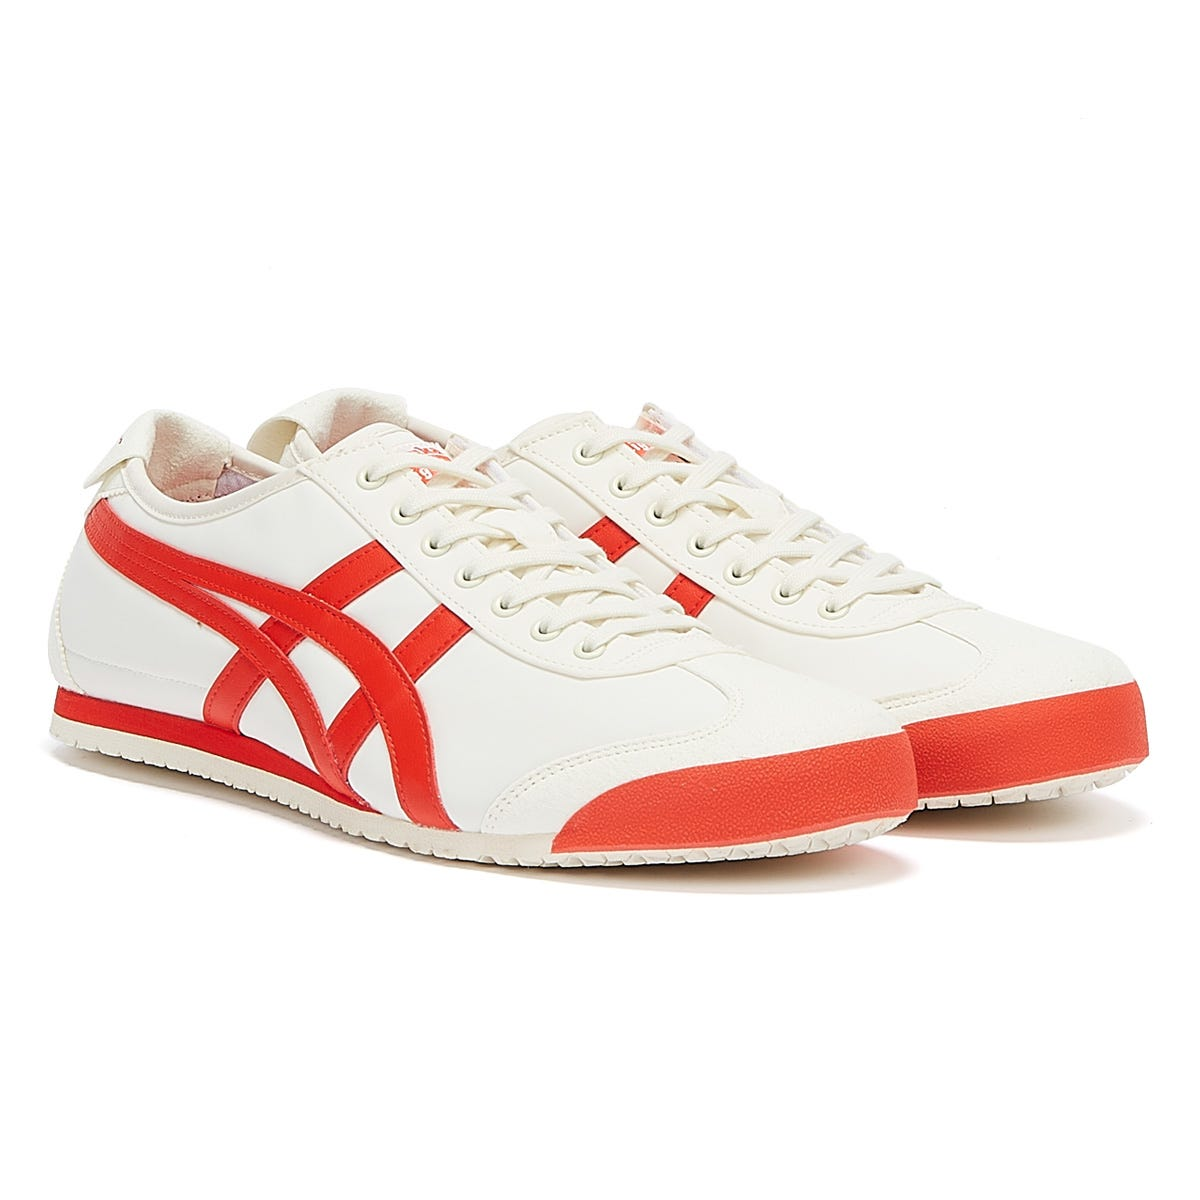 Trainers & Running Shoes Onitsuka Tiger Mexico 66 Mens Cream / Fiery Red Trainers